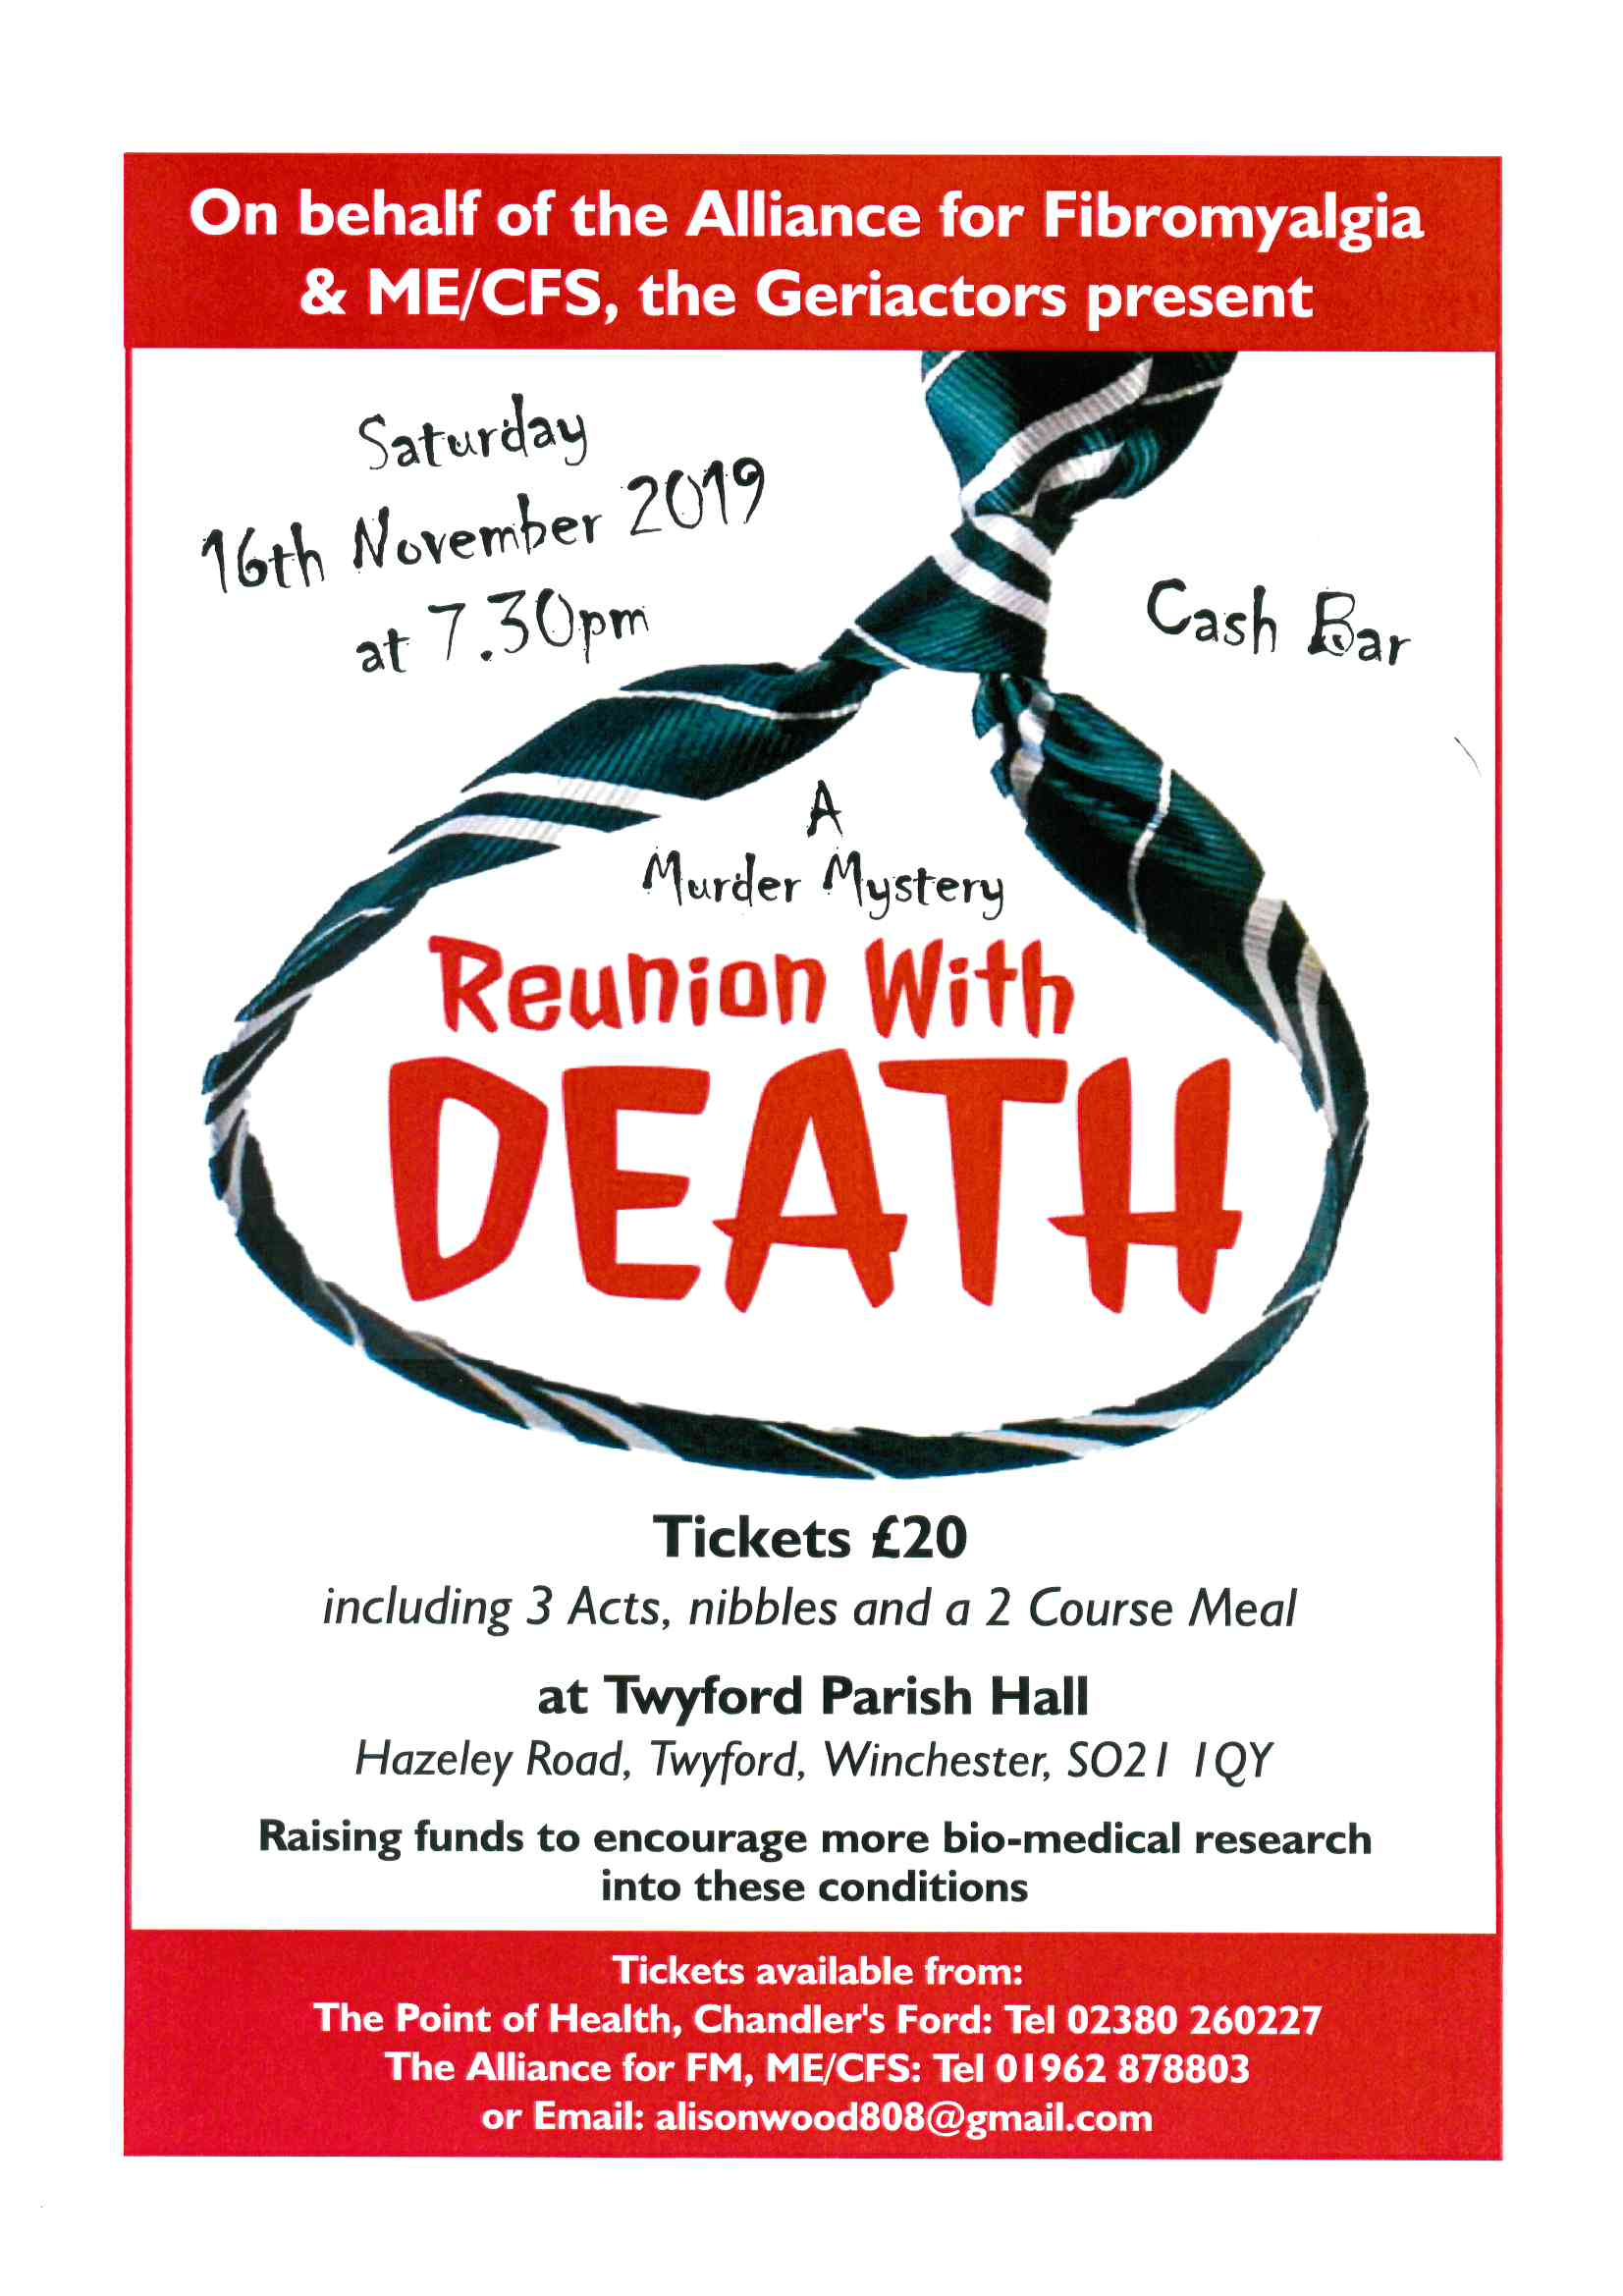 A Reunion with Death a play in support of the Alliance for Fibromyalgia and ME/CFS